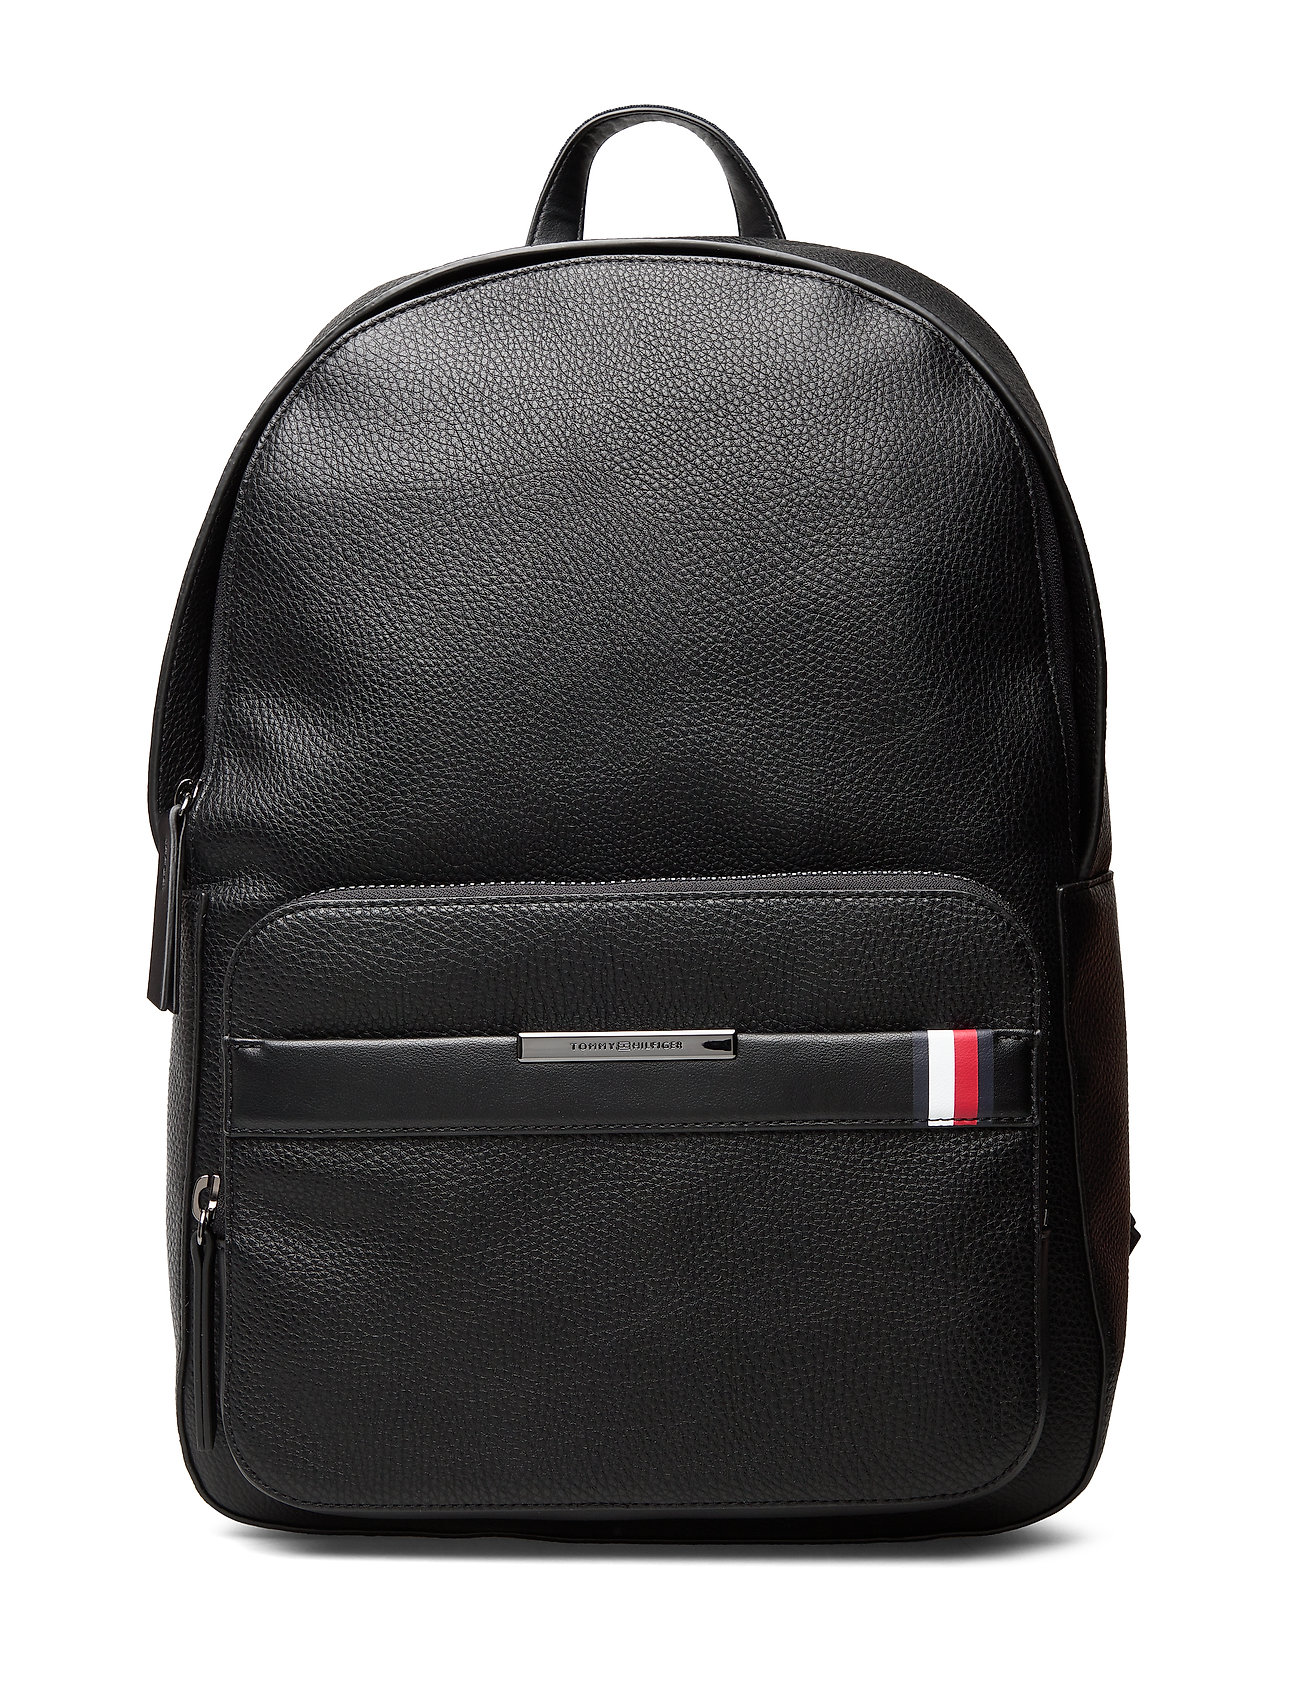 Tommy Hilfiger TH DOWNTOWN BACKPACK - BLACK